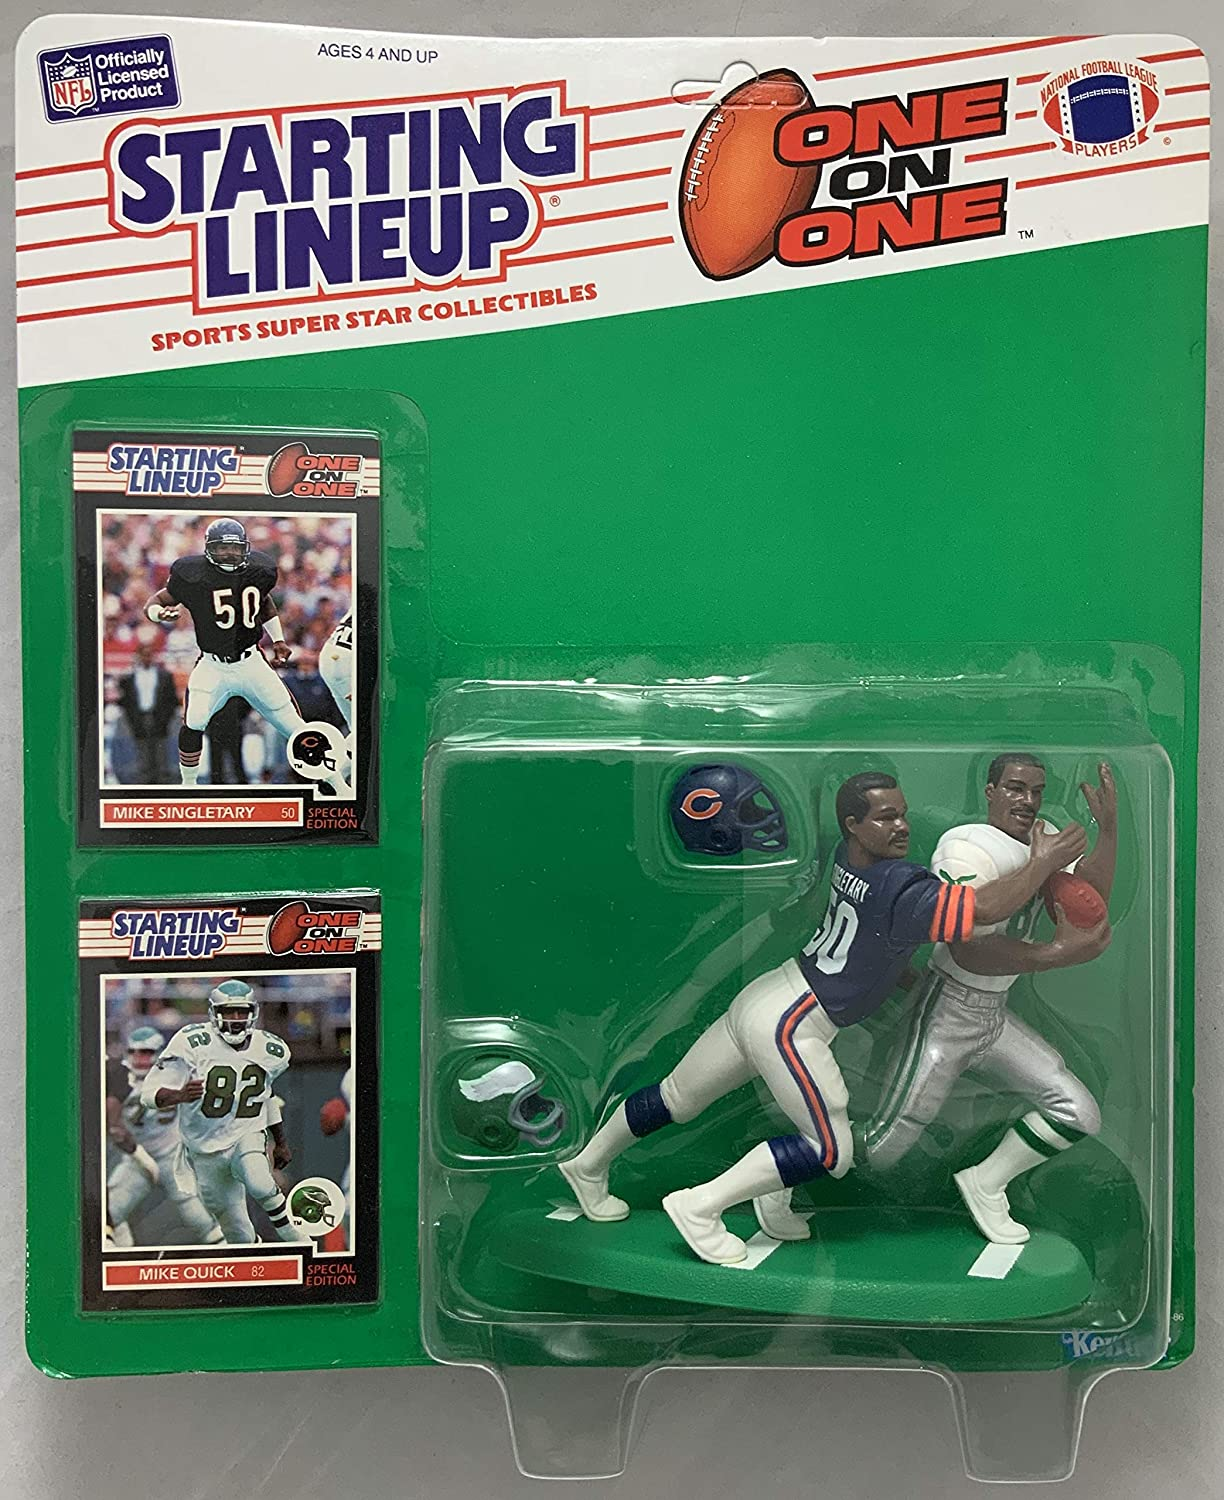 1989 KENNER STARTING LINEUP NFL ONE ON ONE MIKE SINGLETARY MIKE QUICK CHICAGO BEARS PHILADELPHIA EAGLES MOC